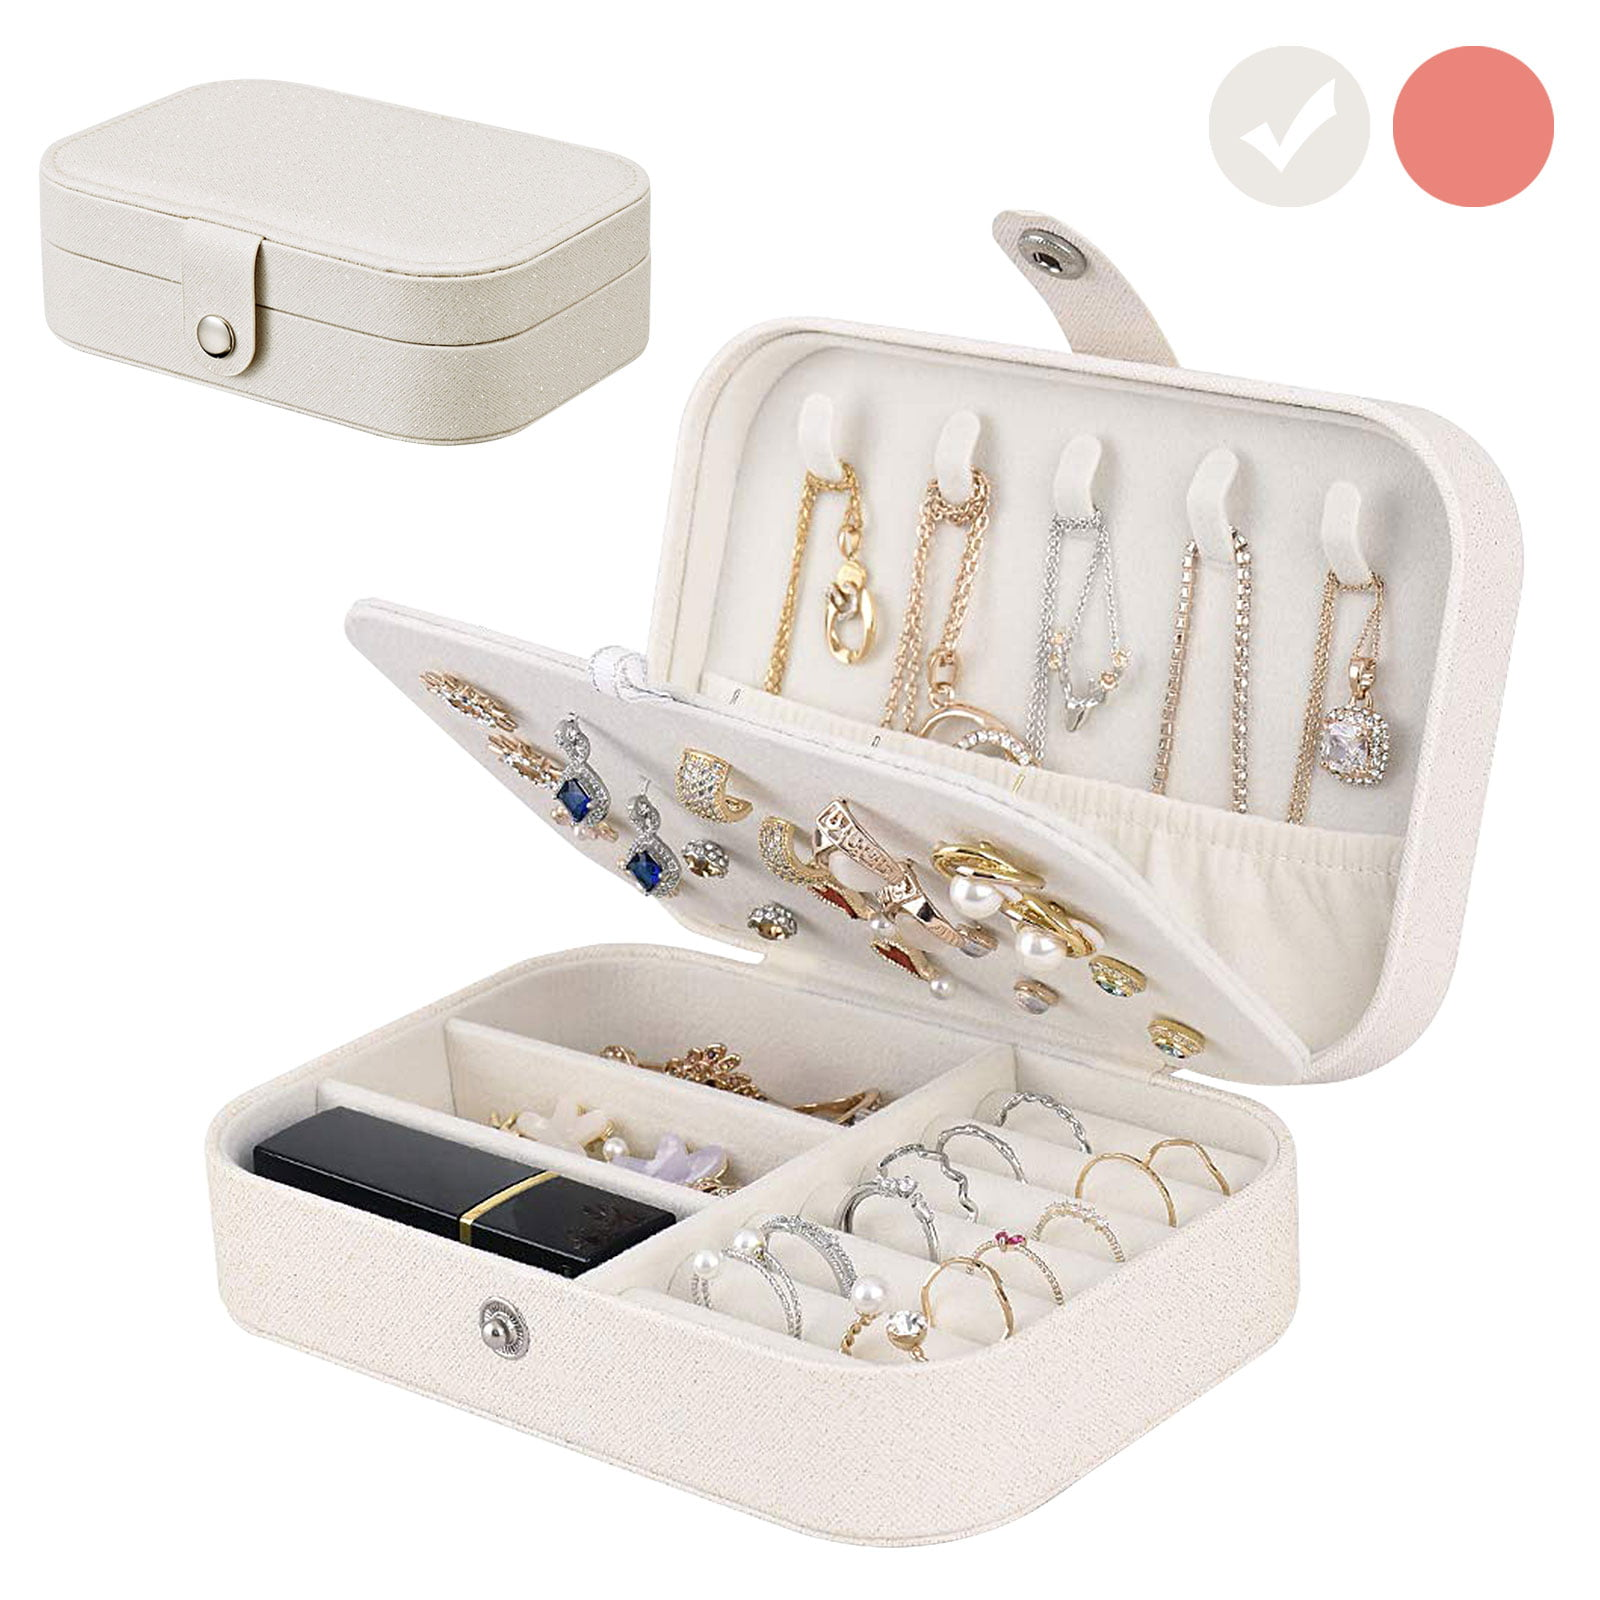 Gift for woman bracelets earrings Jewelry organizer Storage watches Holder for storing necklaces ring Organizer for home and travel